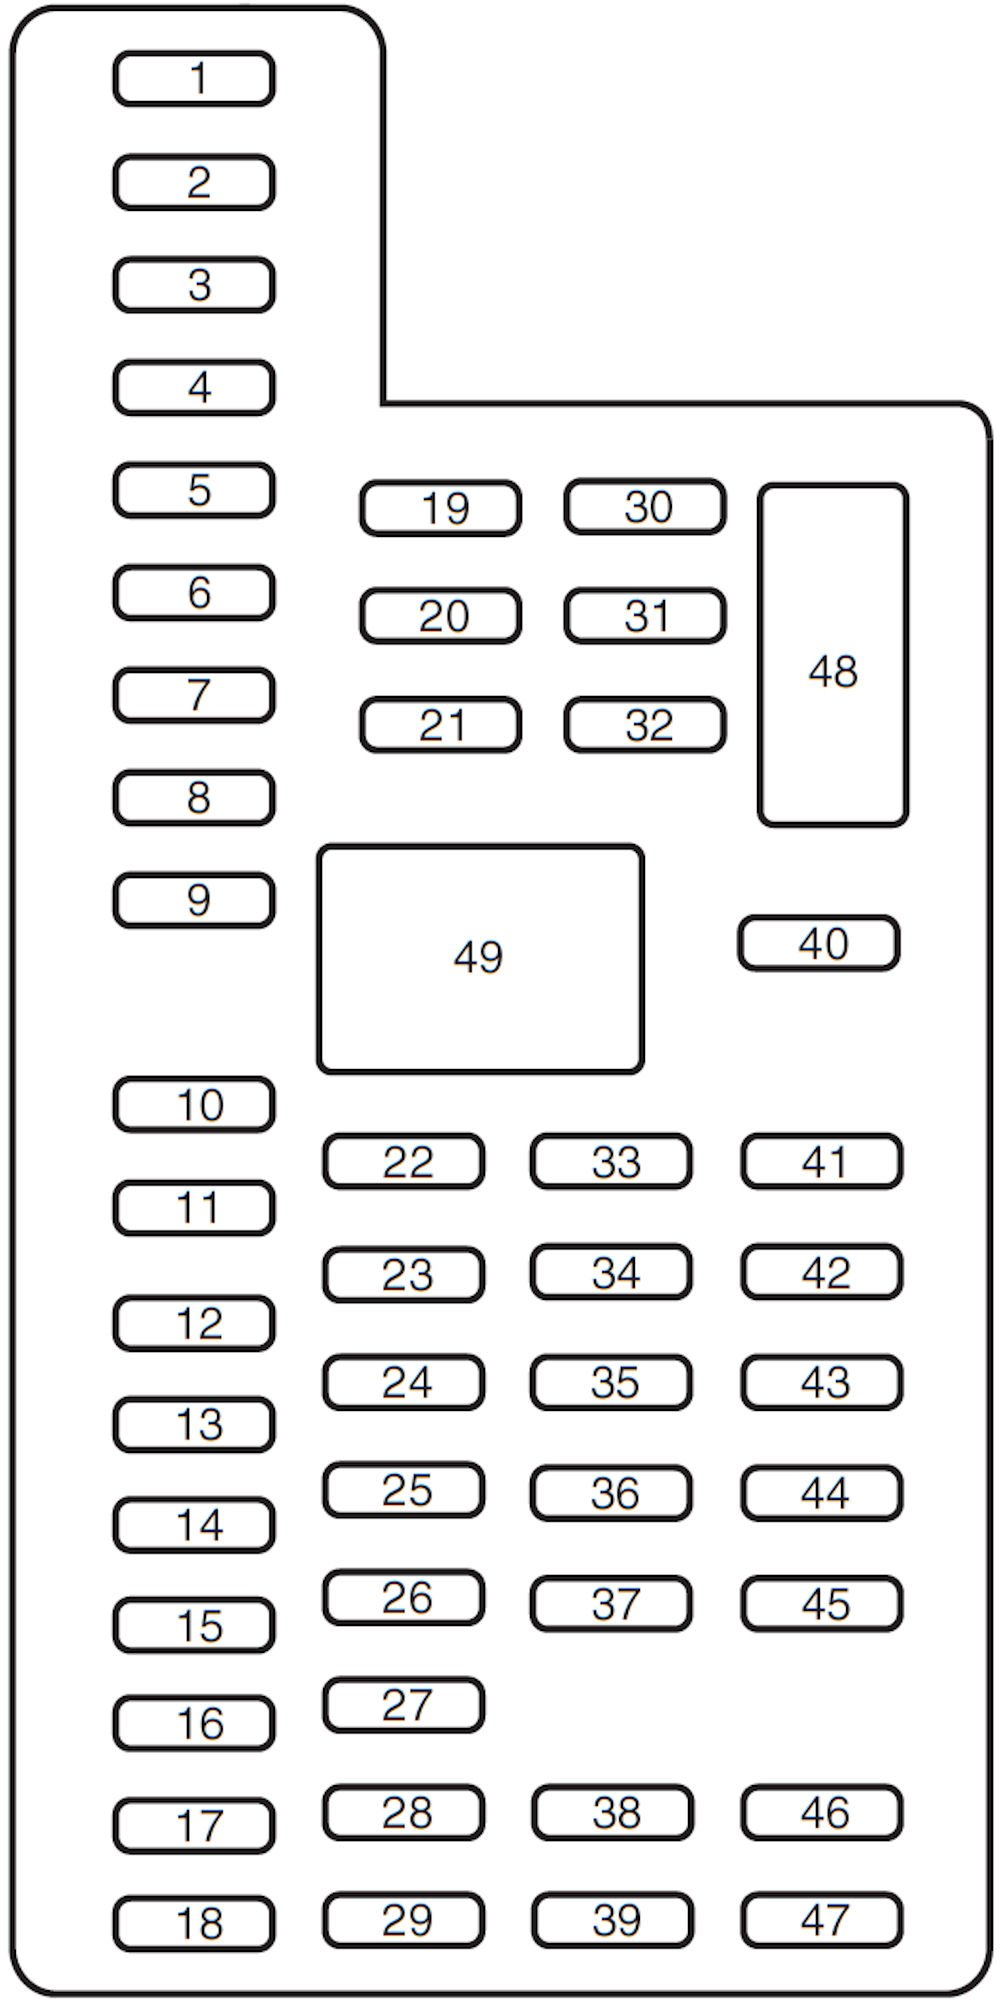 2008 Ford F 250 Fuse Panel Diagram On Ford F 250 Fuse Box Layout